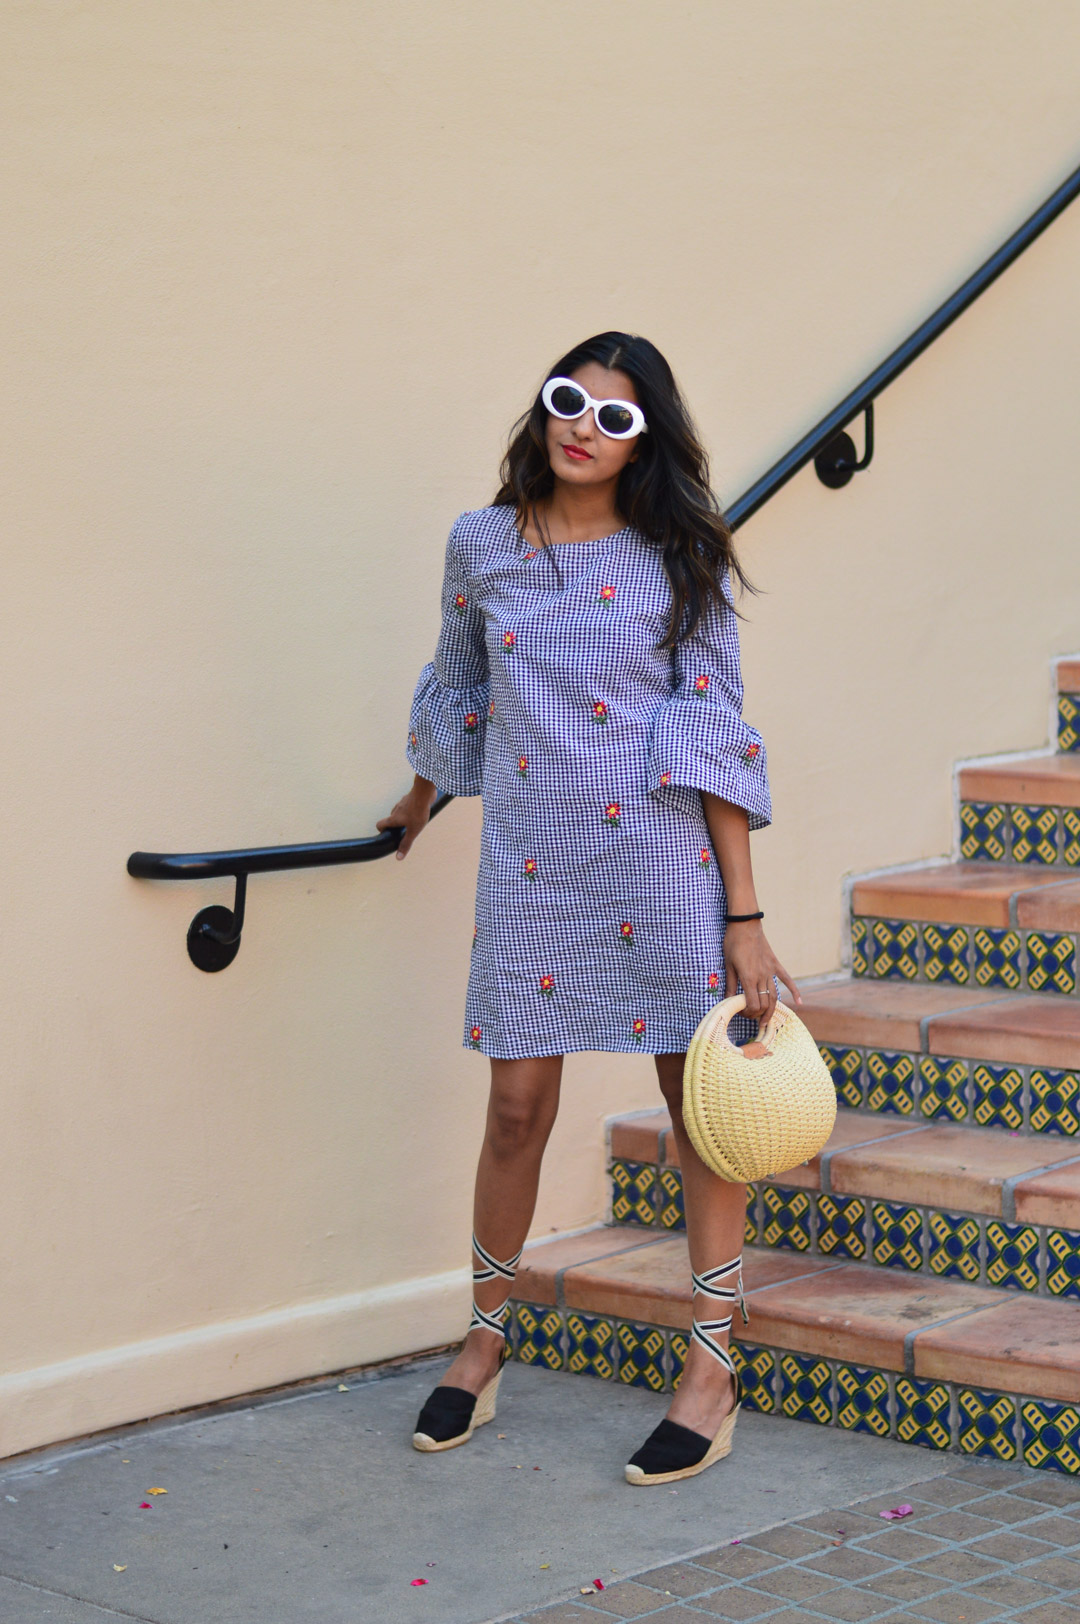 gingham-embroidered-dress-summer-trends-blogger-outfit 1